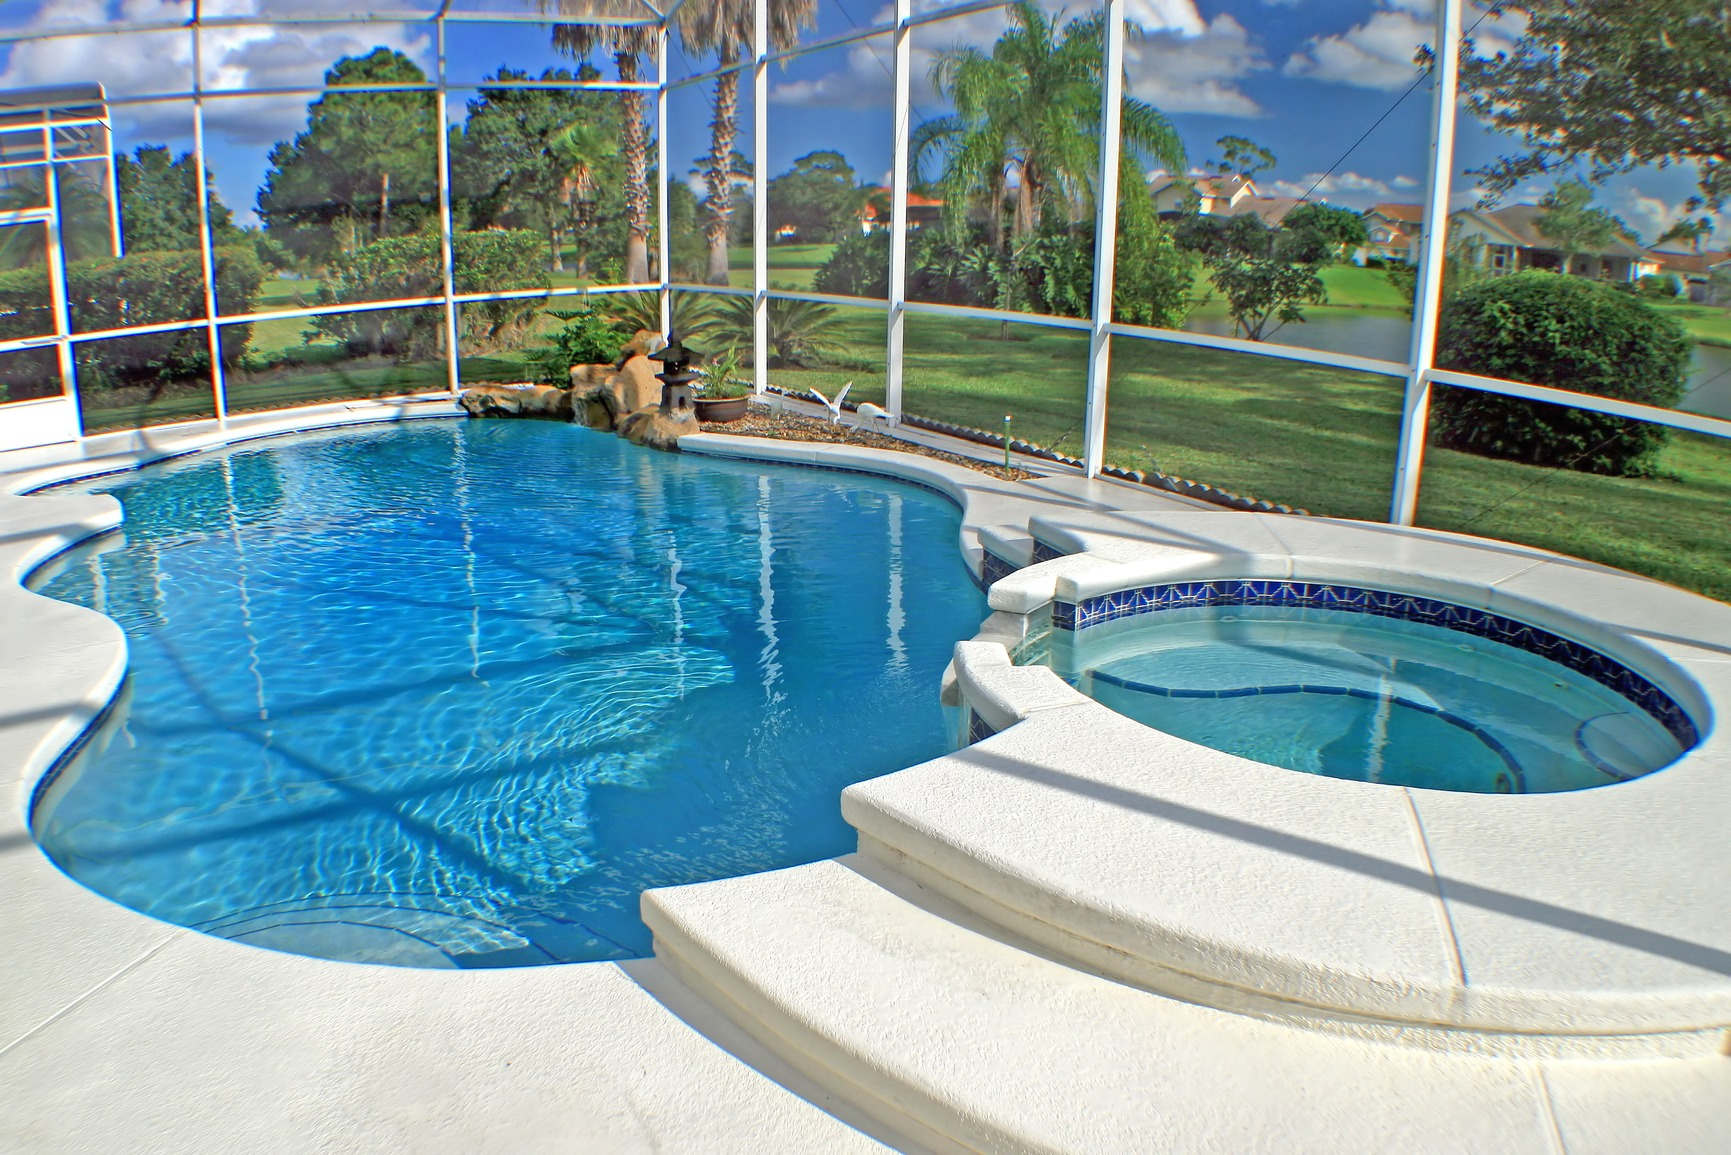 Welcome to aquarius pools aquarius pools for Icf pool construction